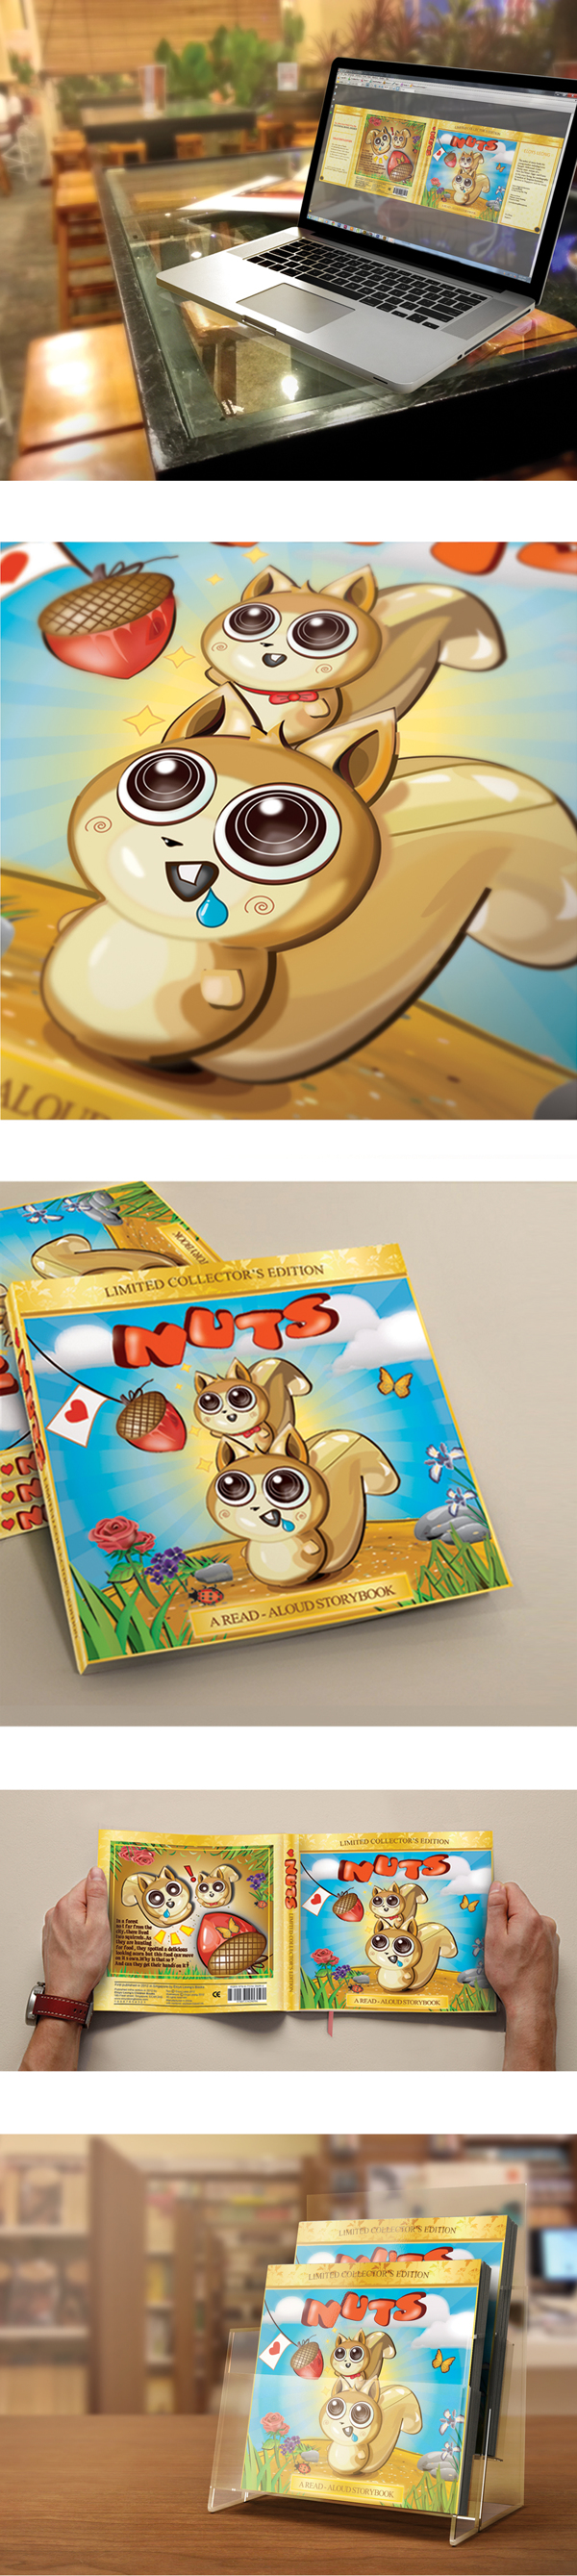 Nuts Storybook by Eloys Leong, via Behance